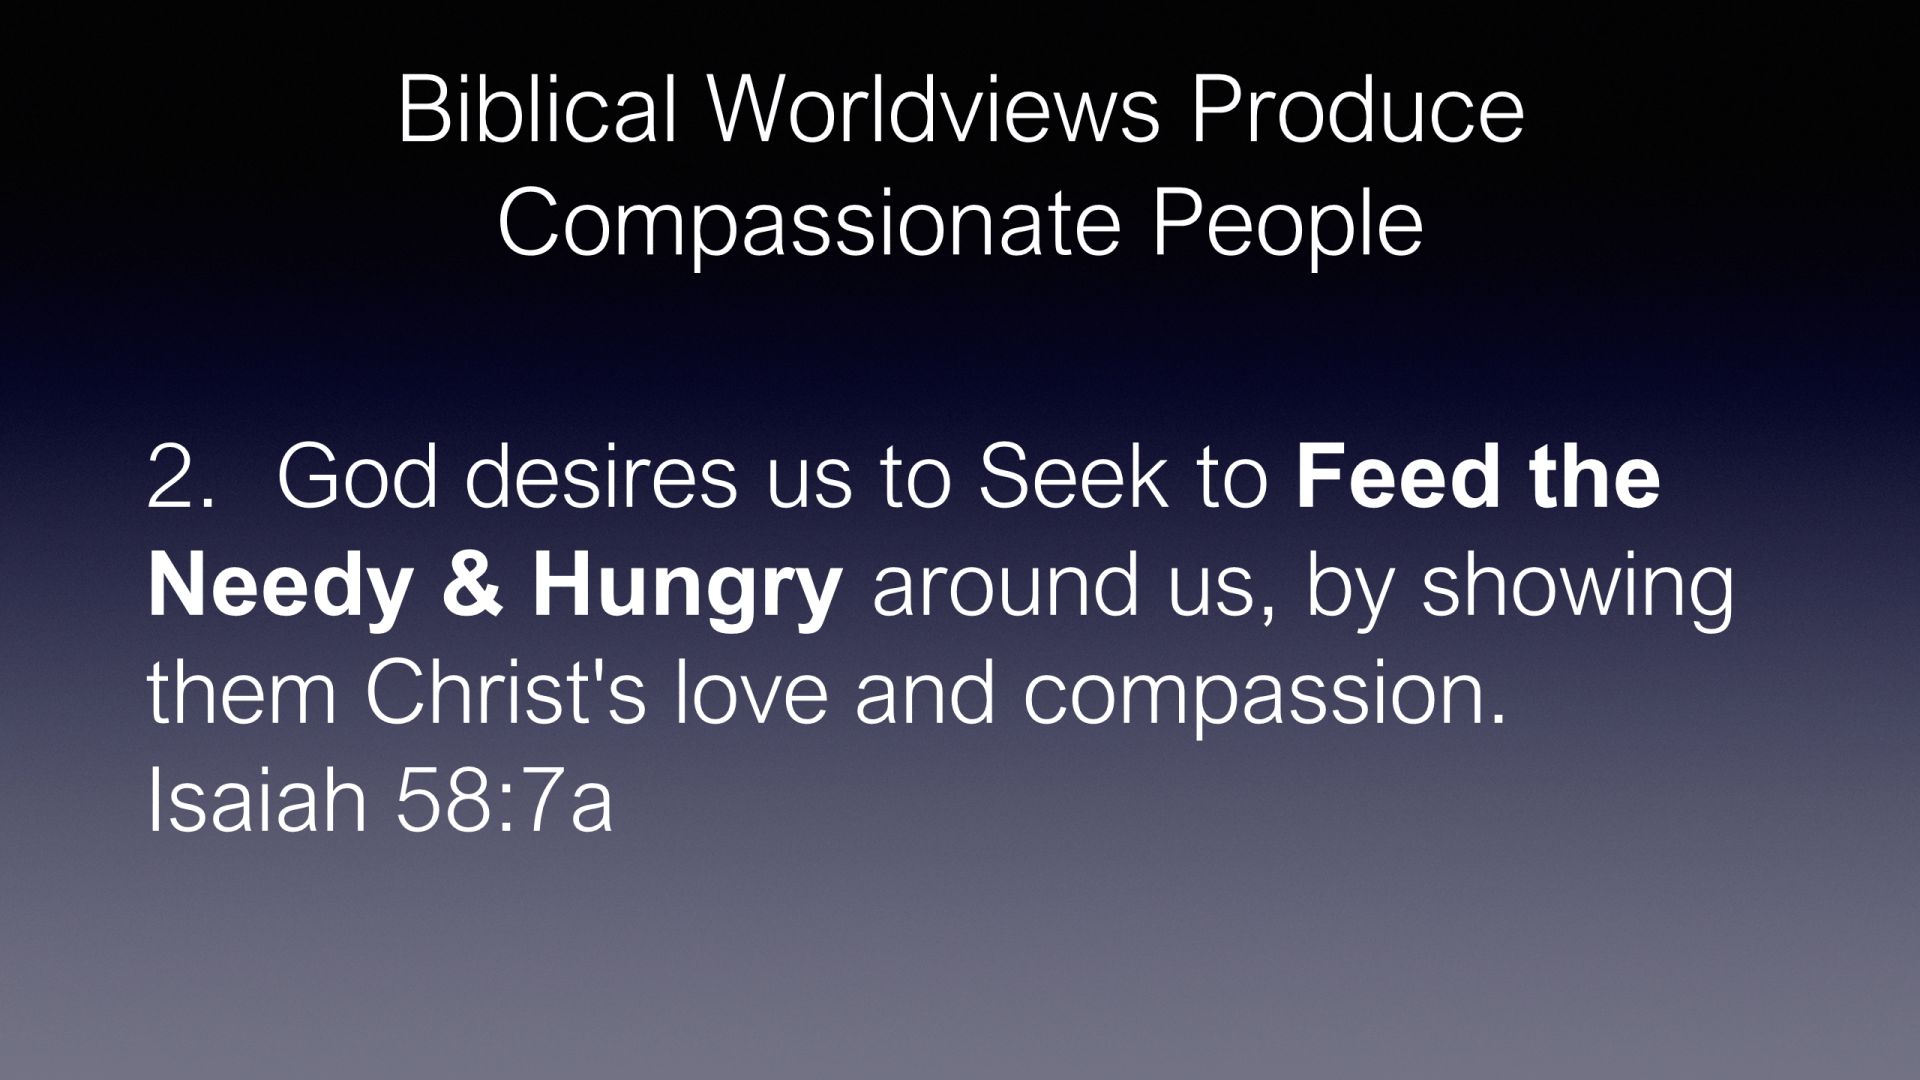 HFG-07 - Applying a Biblical Worldview of Love & Compassion (14)